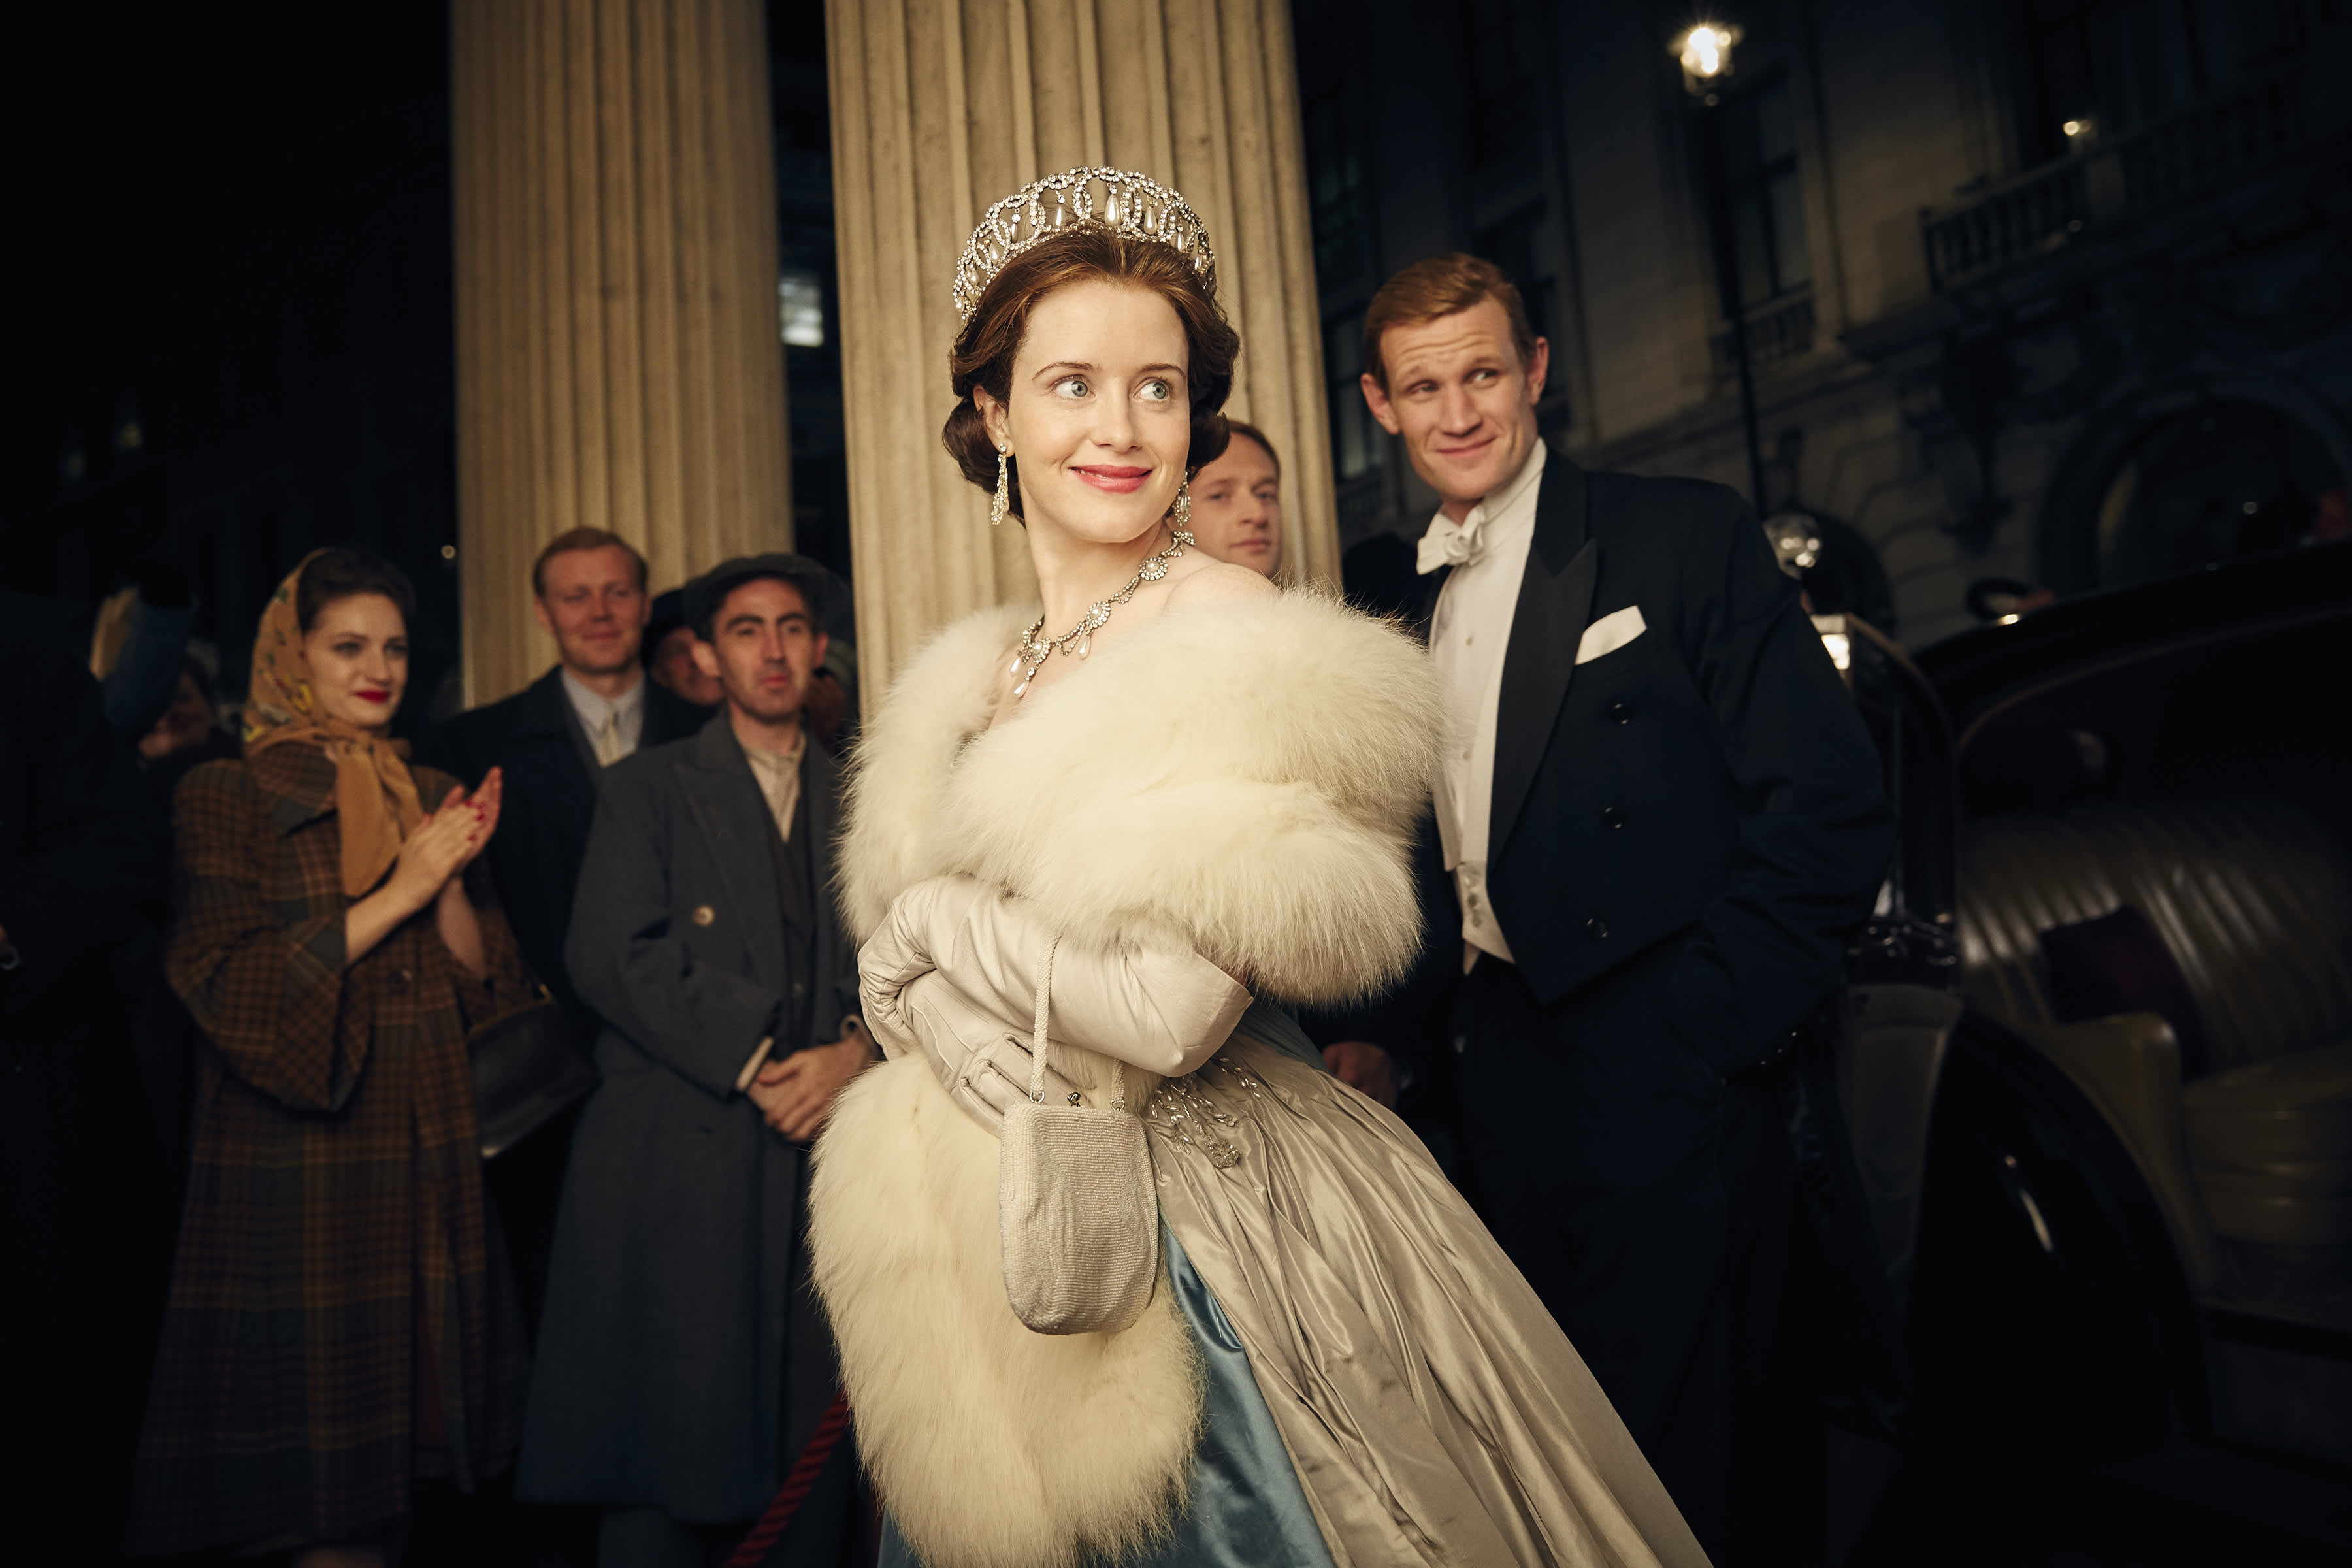 The Crown Paid Claire Foy Less for Playing Queen Elizabeth Than Matt Smith for Prince Philip